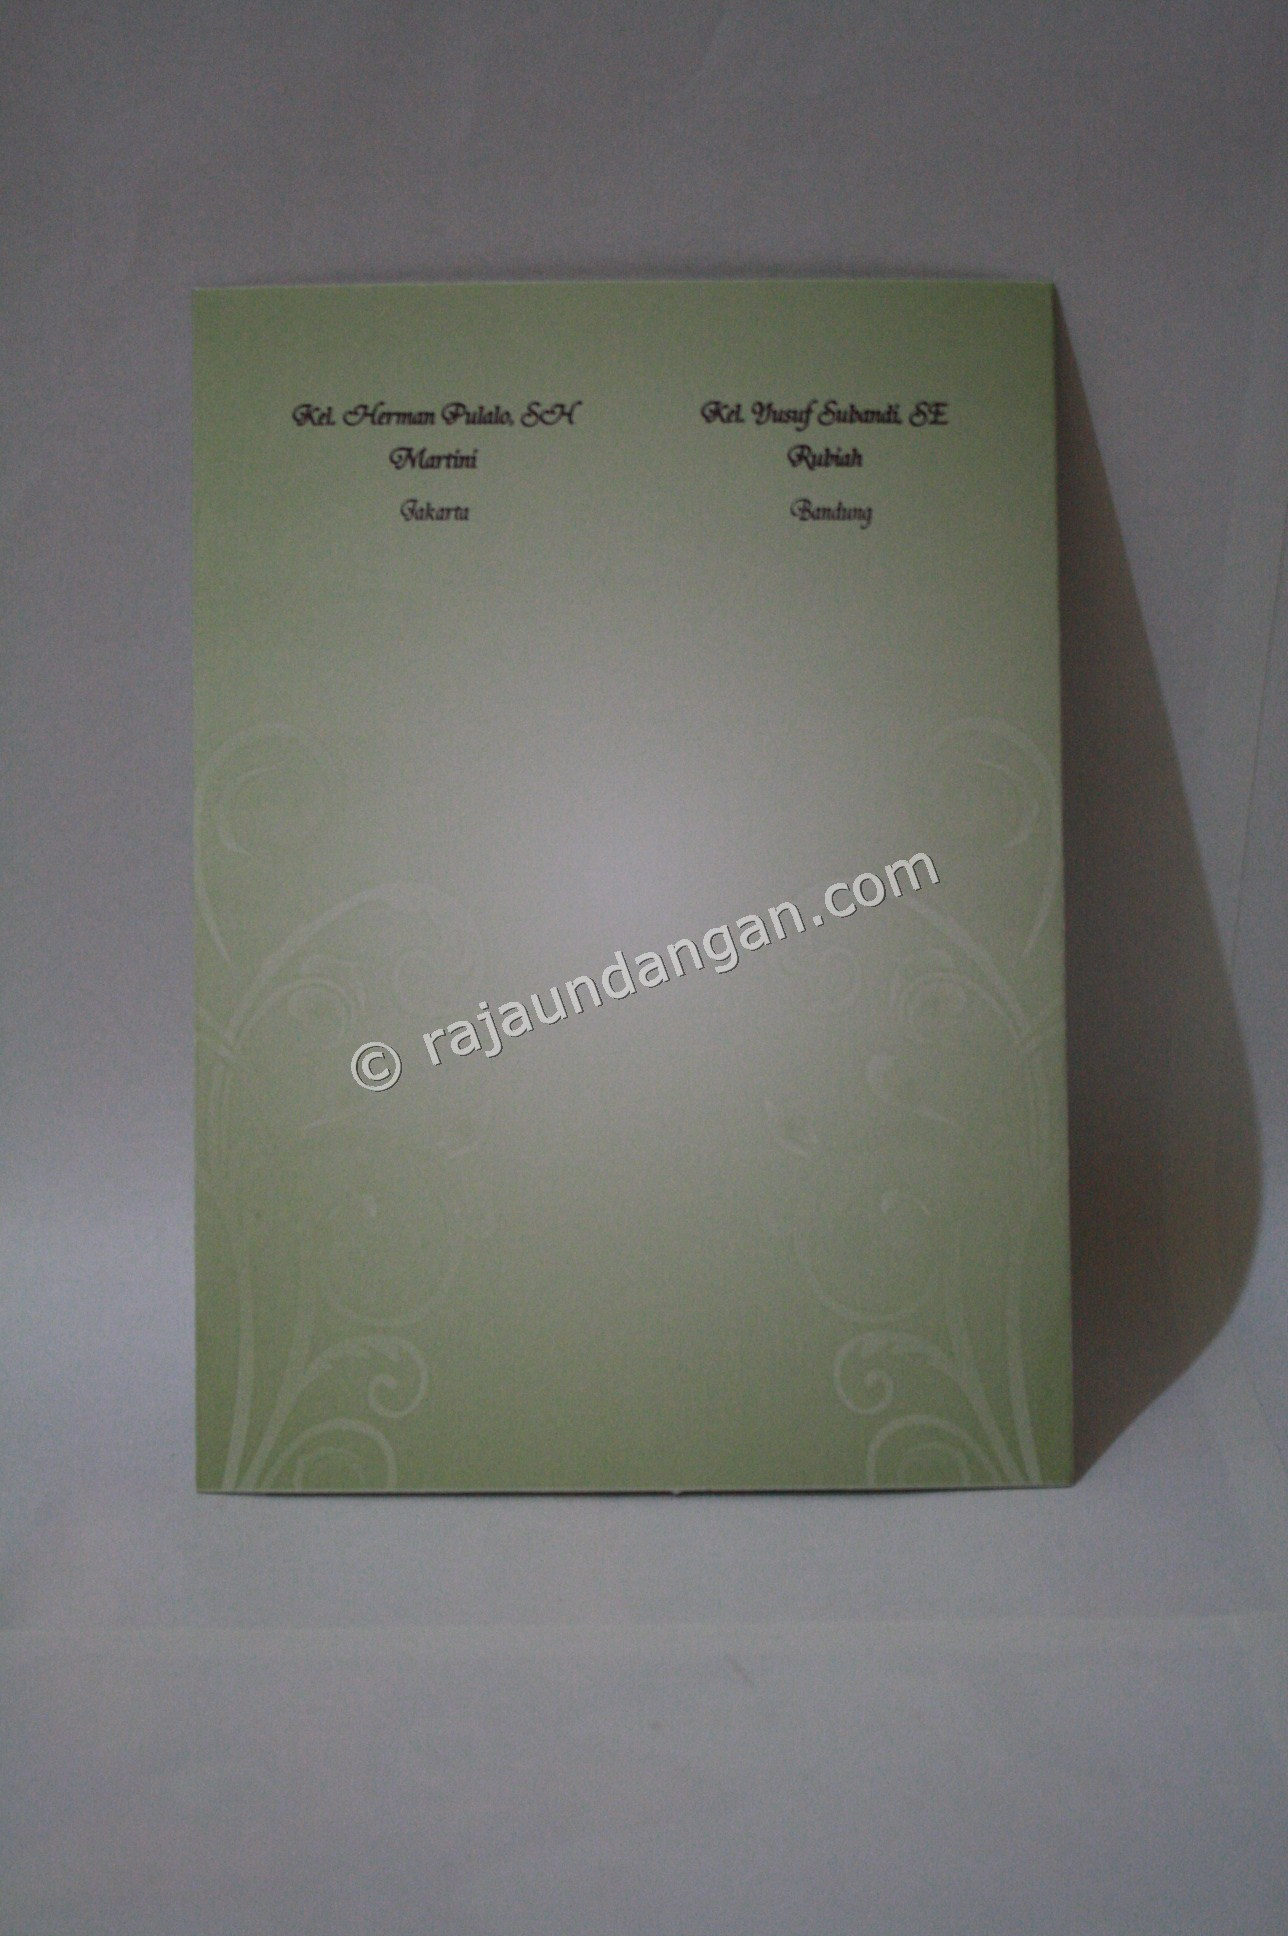 Undangan Pernikahan Softcover Herman dan Tini 2 - Membuat Wedding Invitations Eksklusif di Jeruk